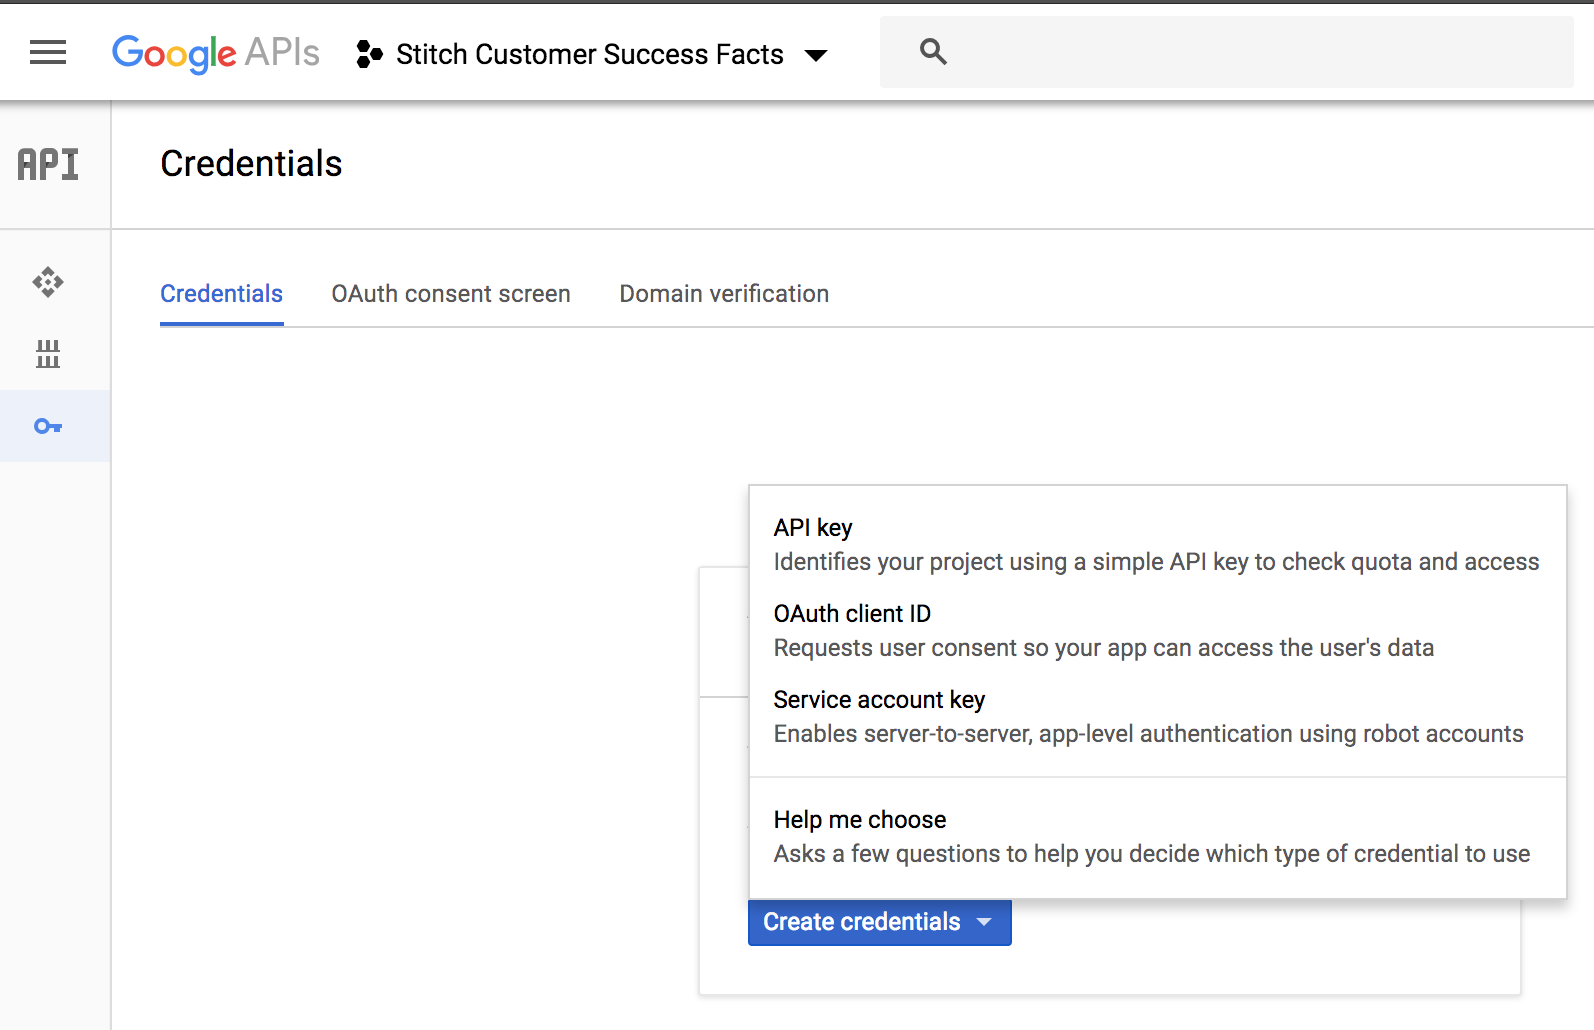 Select OAuth client ID > [Consent](https://console.developers.google.com/apis/credentials/consent) > Web application